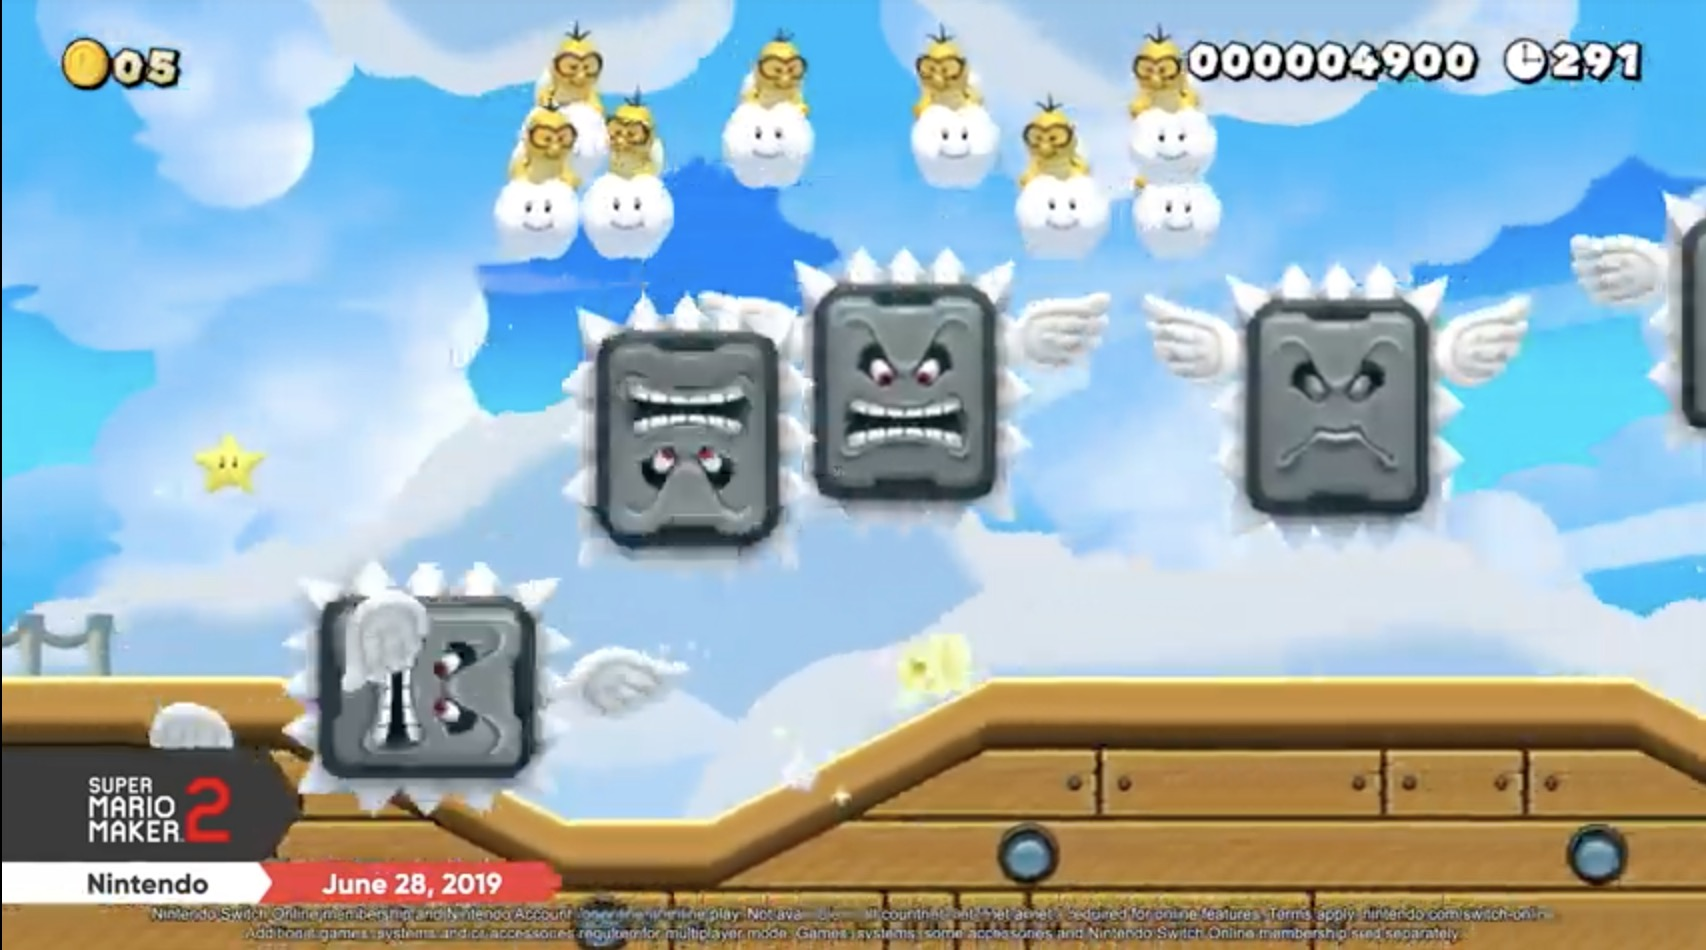 Nintendo is changing matchmaking with friends in Super Mario